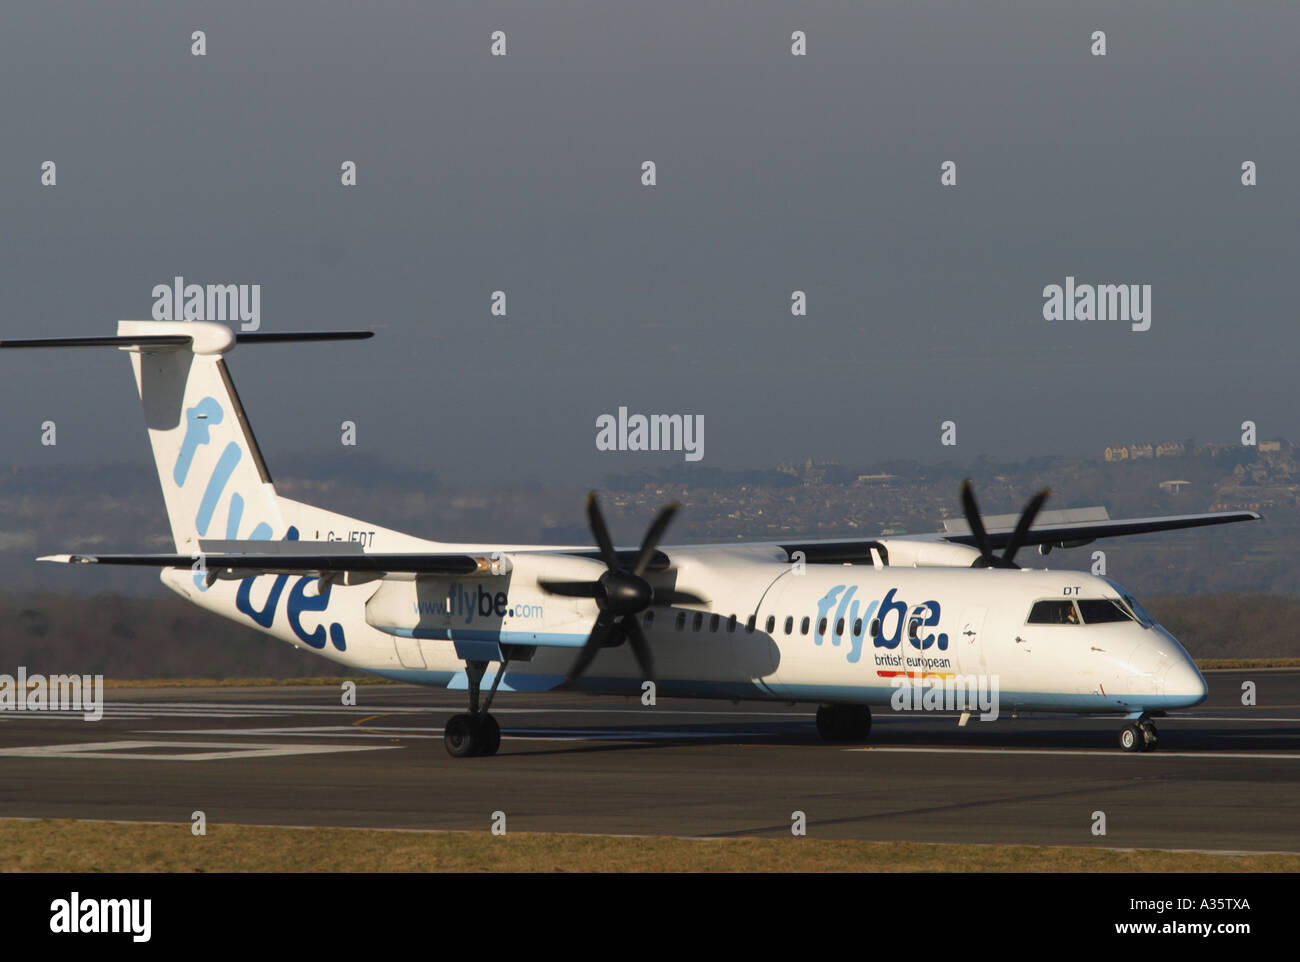 Flybe Bombardier DHC Dash 8 turboprop airliner preparing for take off at Bristol airport taken 2006 - Stock Image